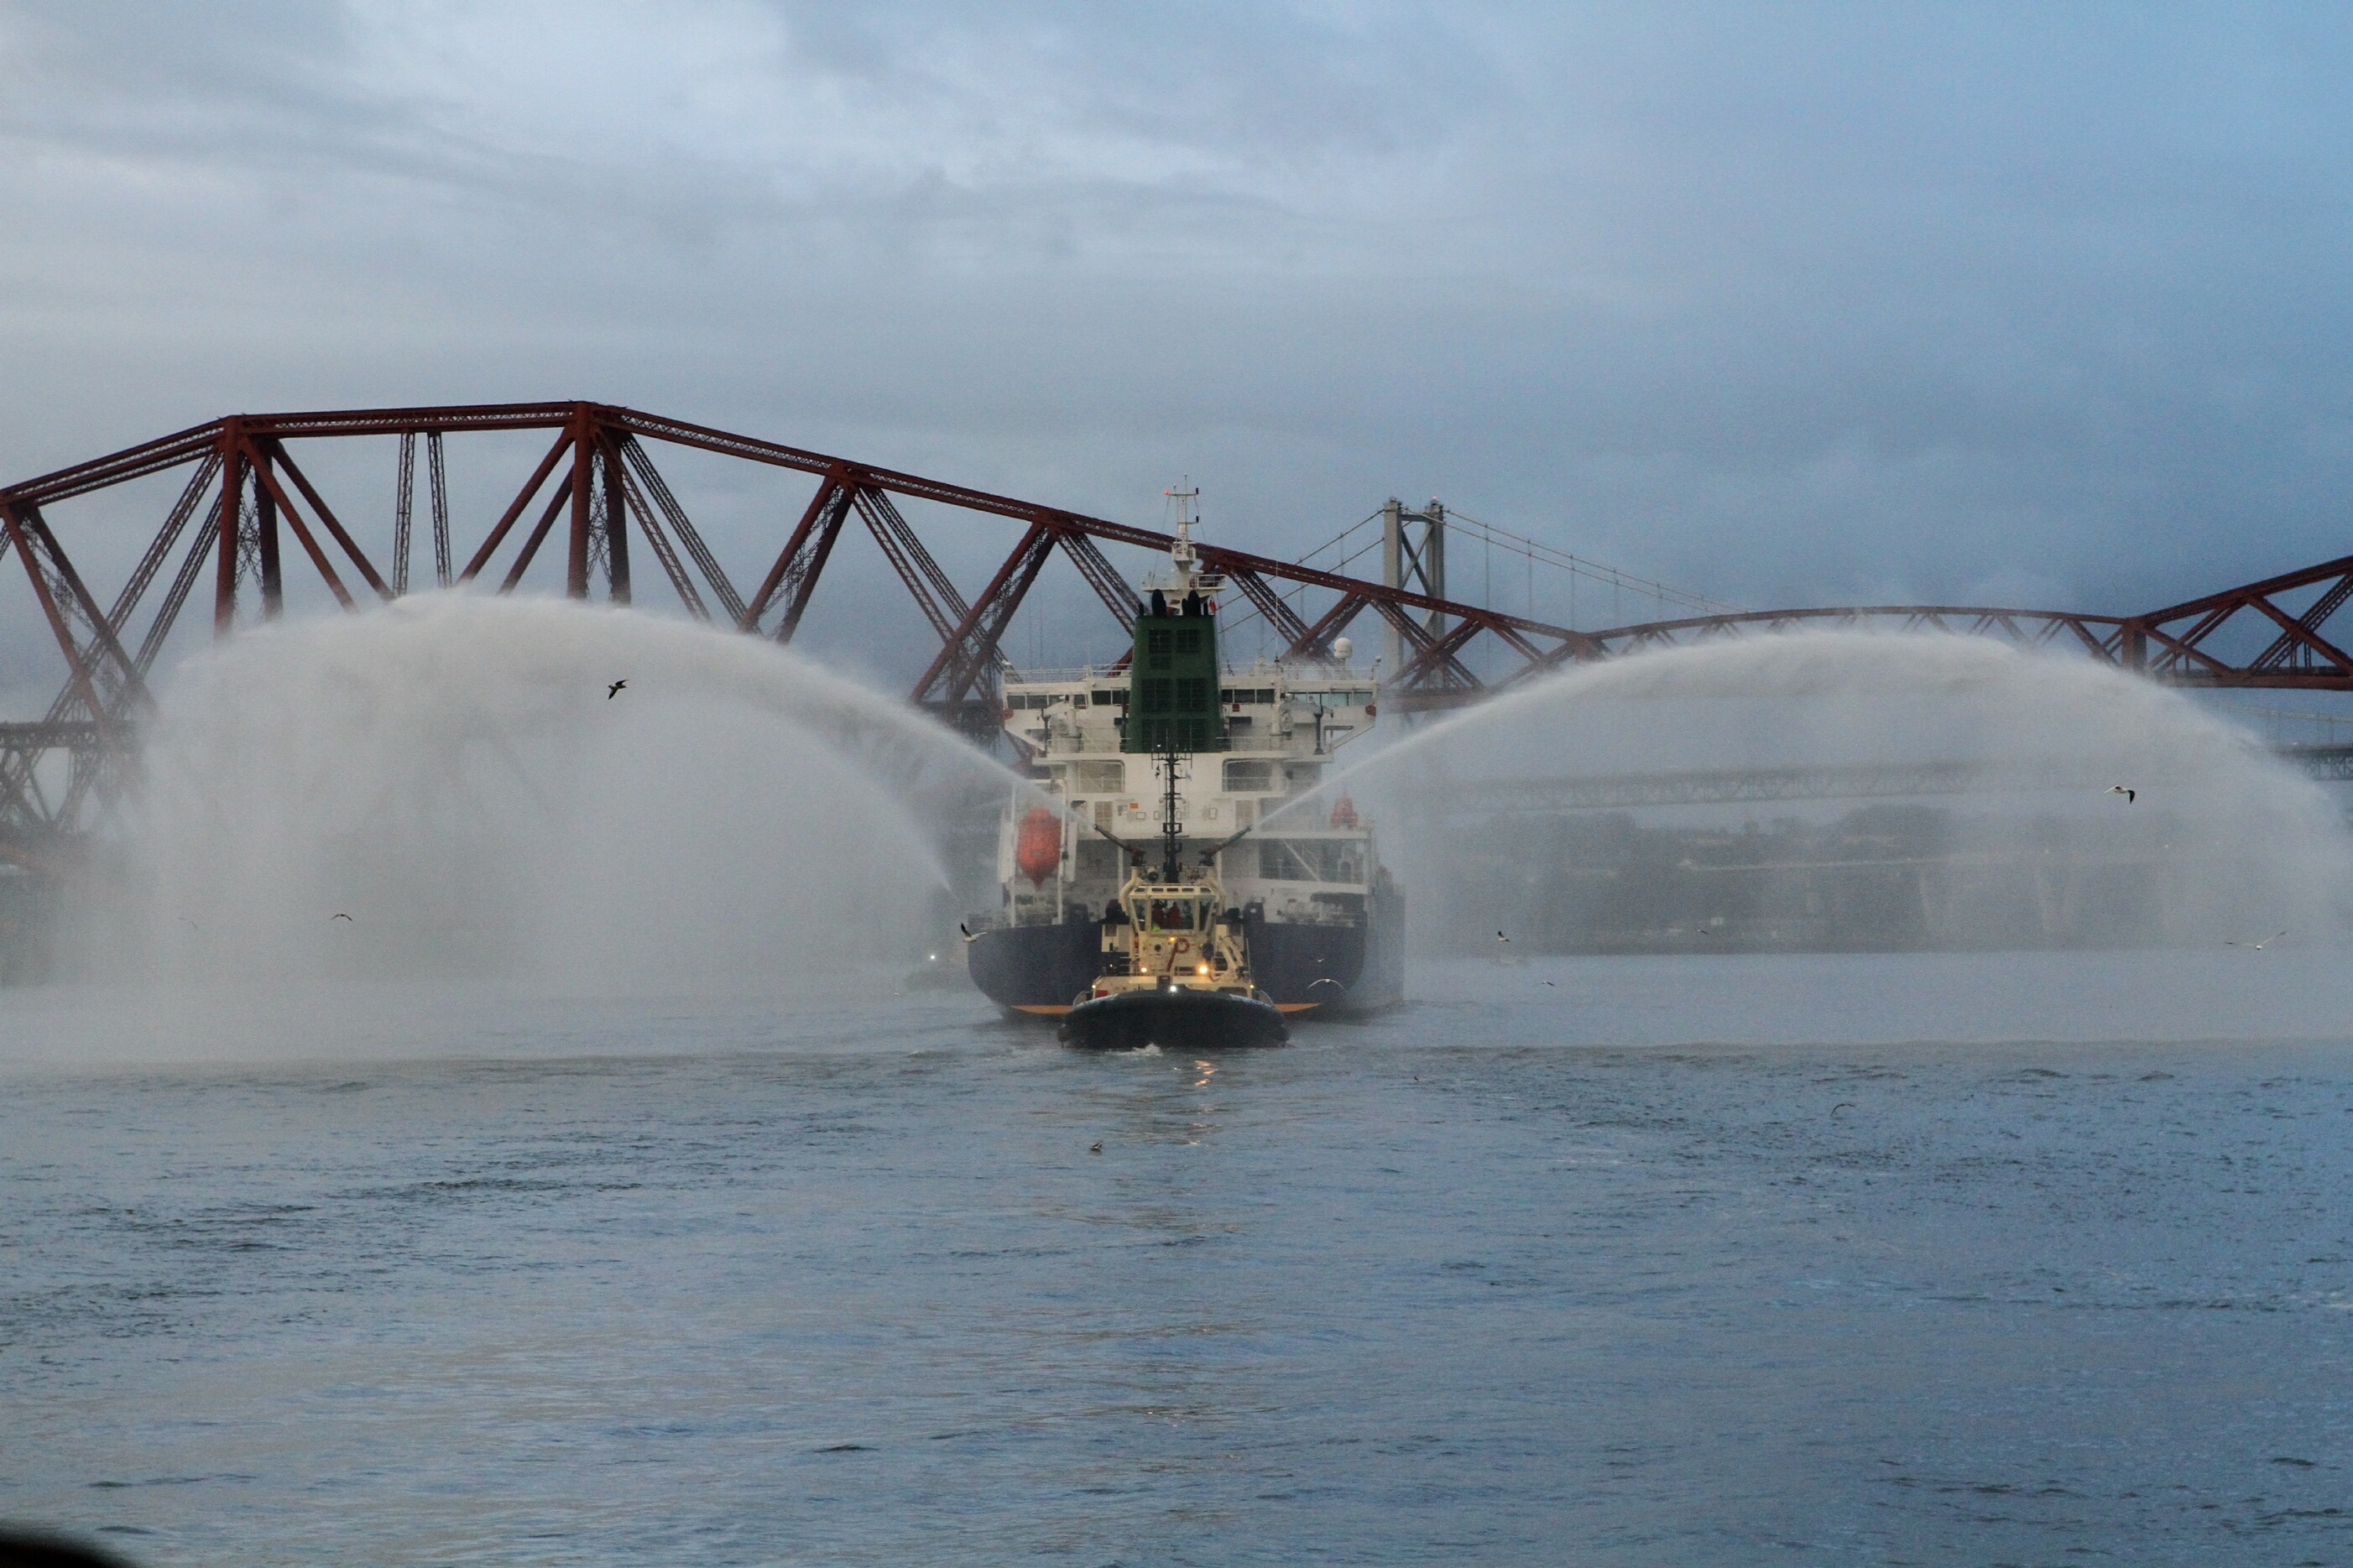 Water cannons mark the arrival of the INEOS Insight into Grangemouth